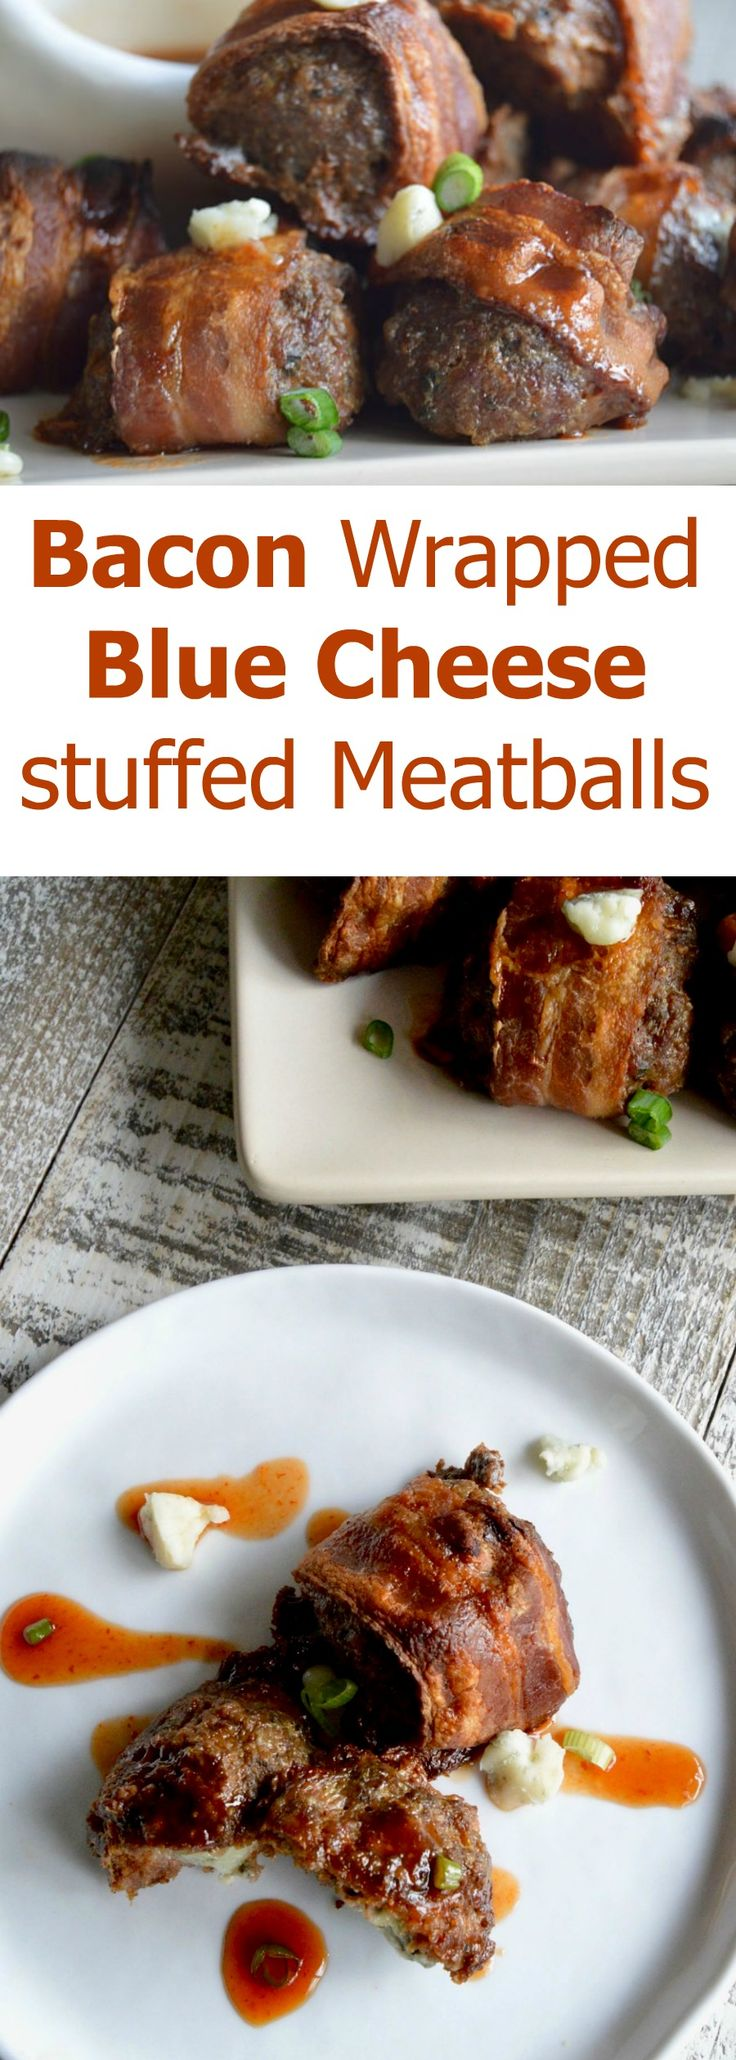 Bacon Wrapped Blue Cheese meatballs |Appetizer| Partyfood| via @westviamidwest